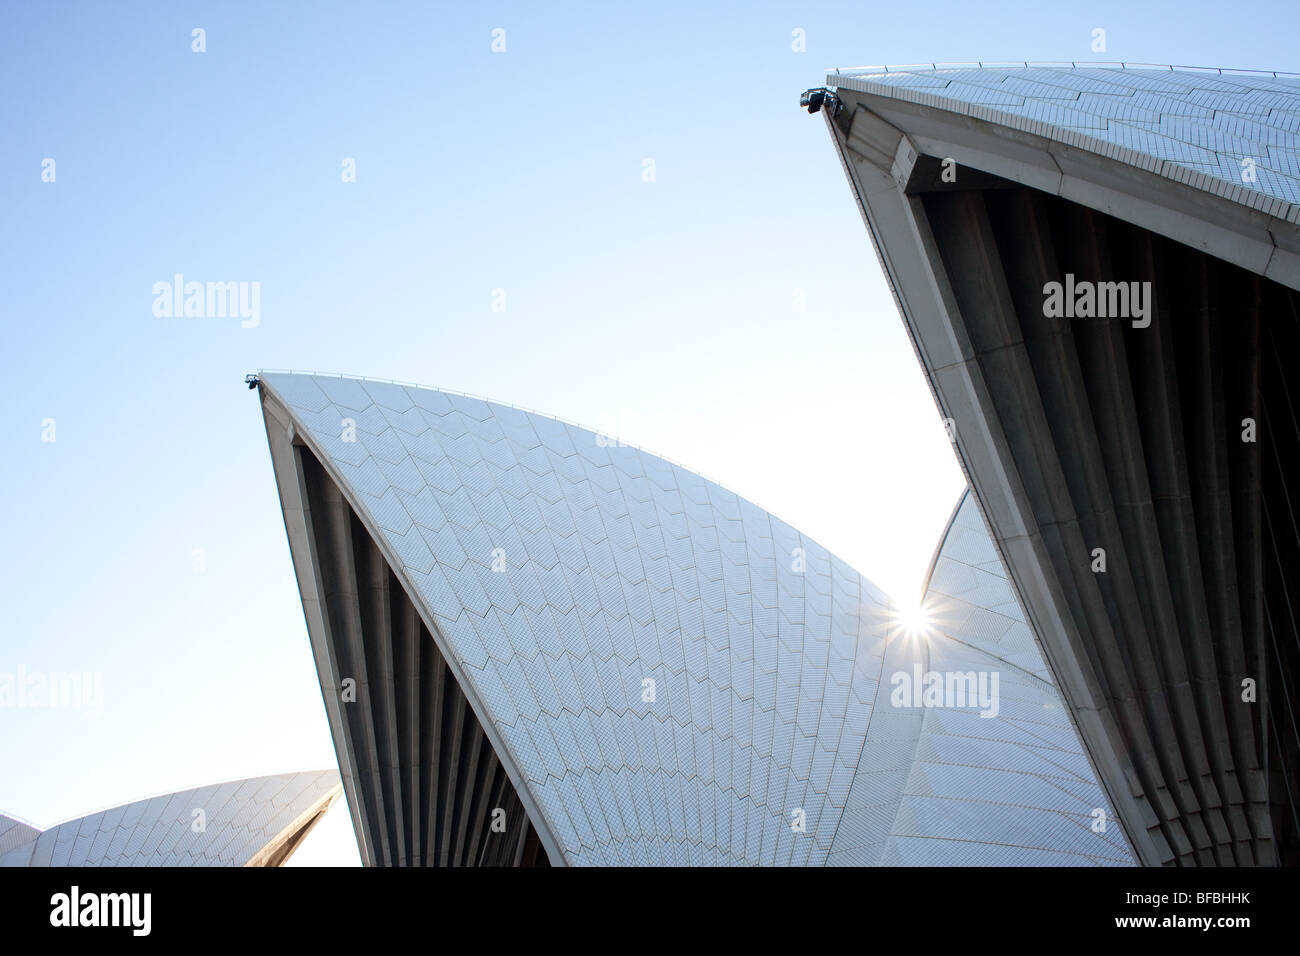 The shells of the Sydney Opera House, one of the world's most famous examples of modernist architecture. - Stock Image